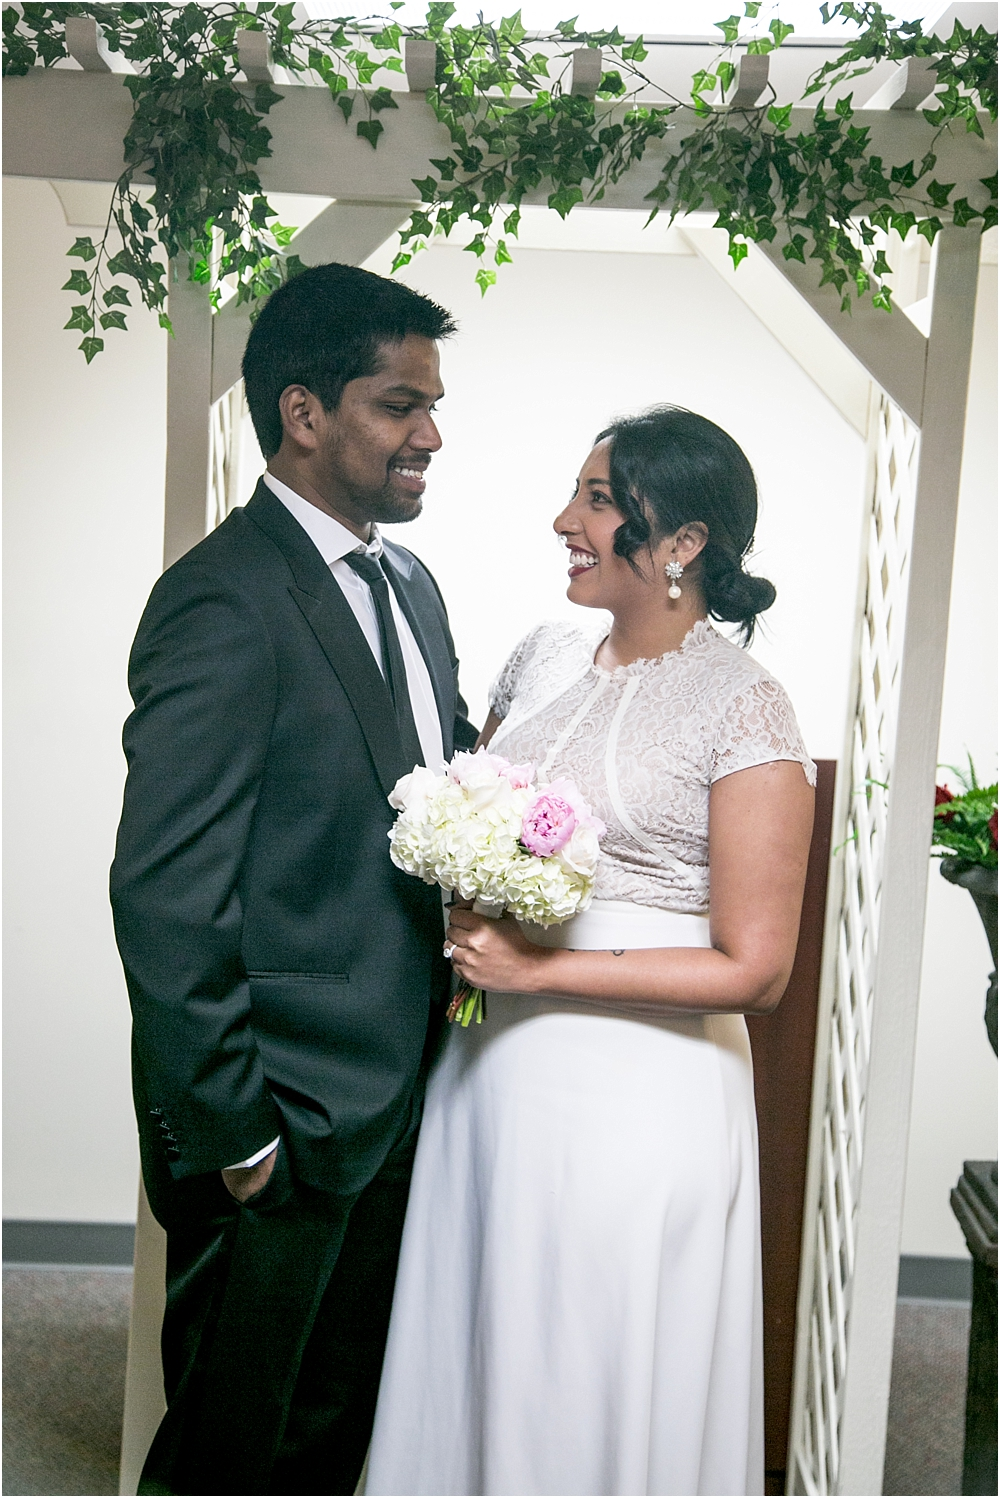 neelima praveen maryland courthouse wedding living radiant photography_0011.jpg